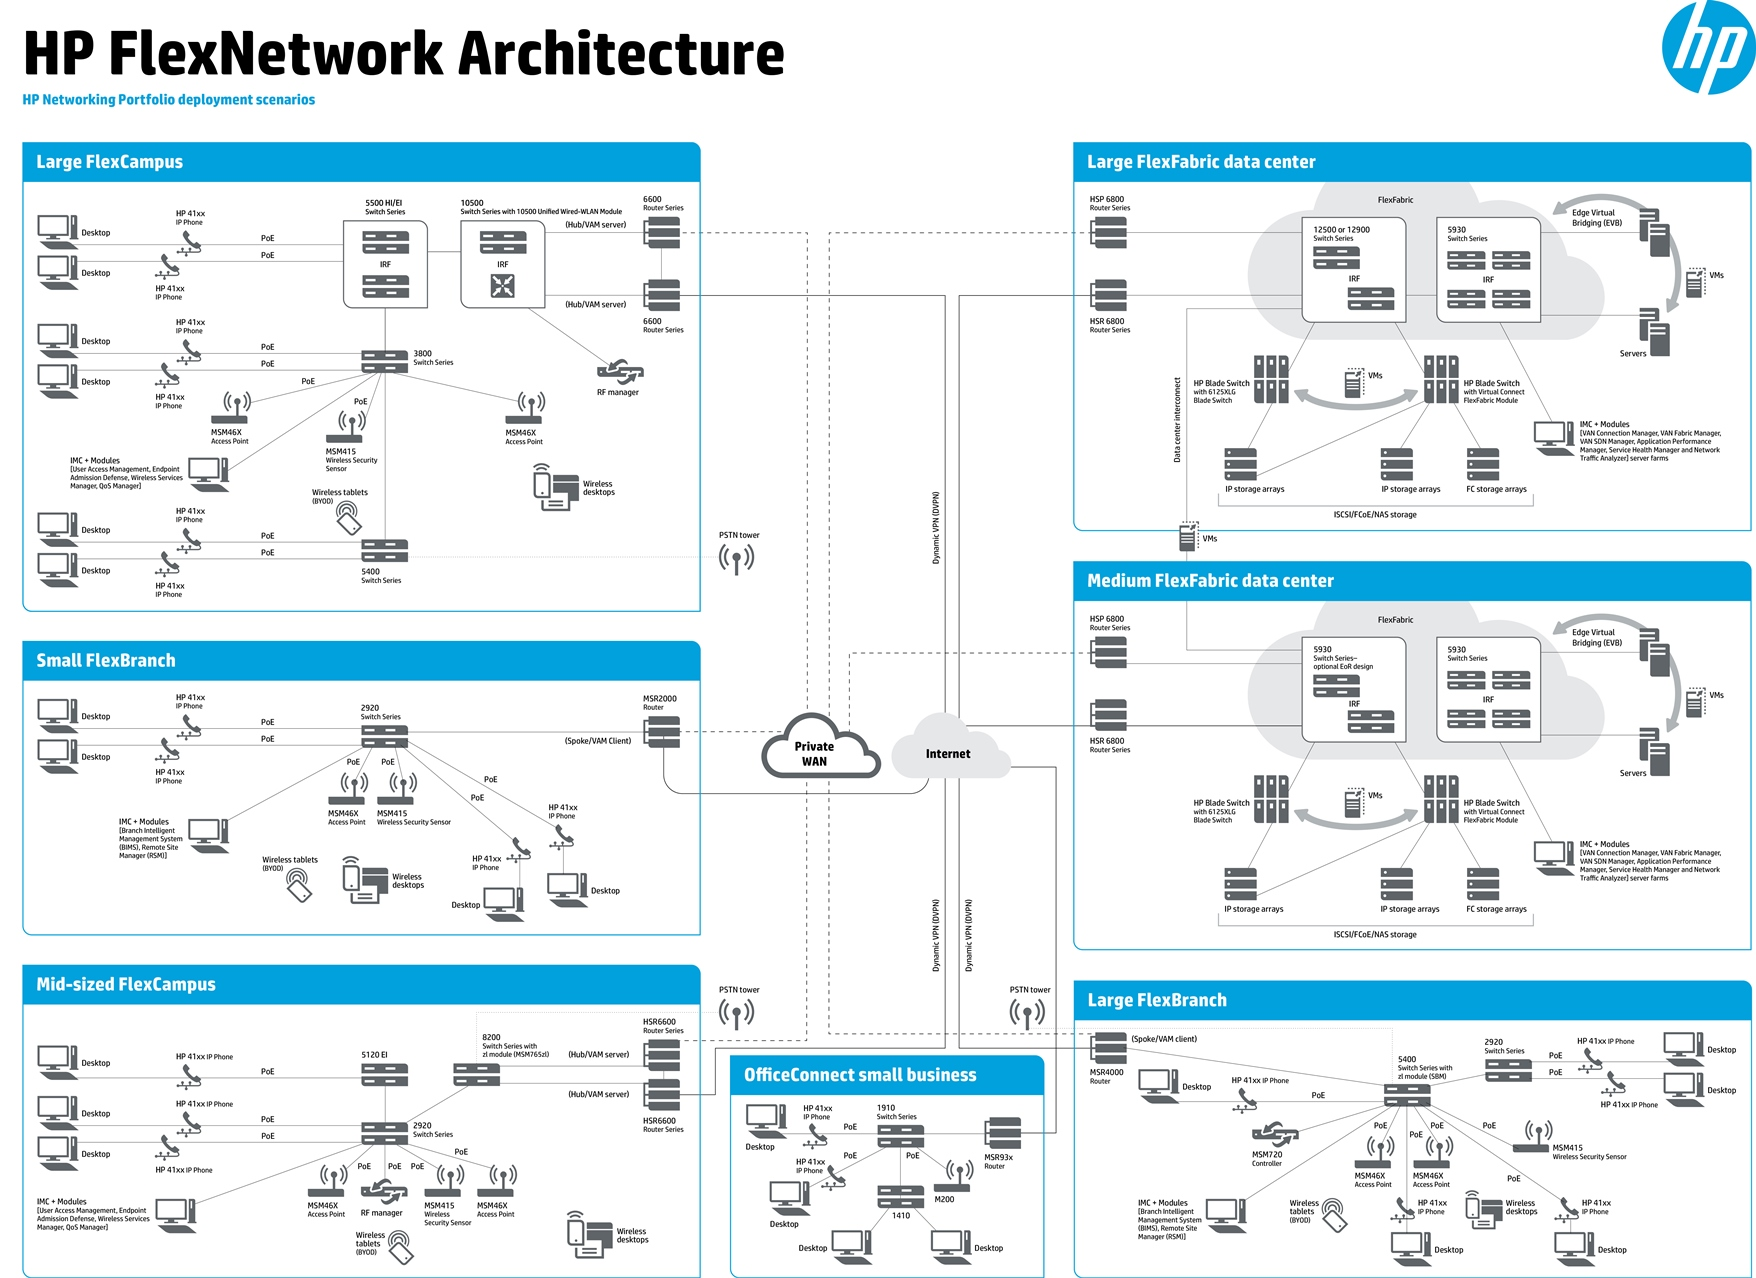 HP_FlexNetwork_Architecture_2014-1